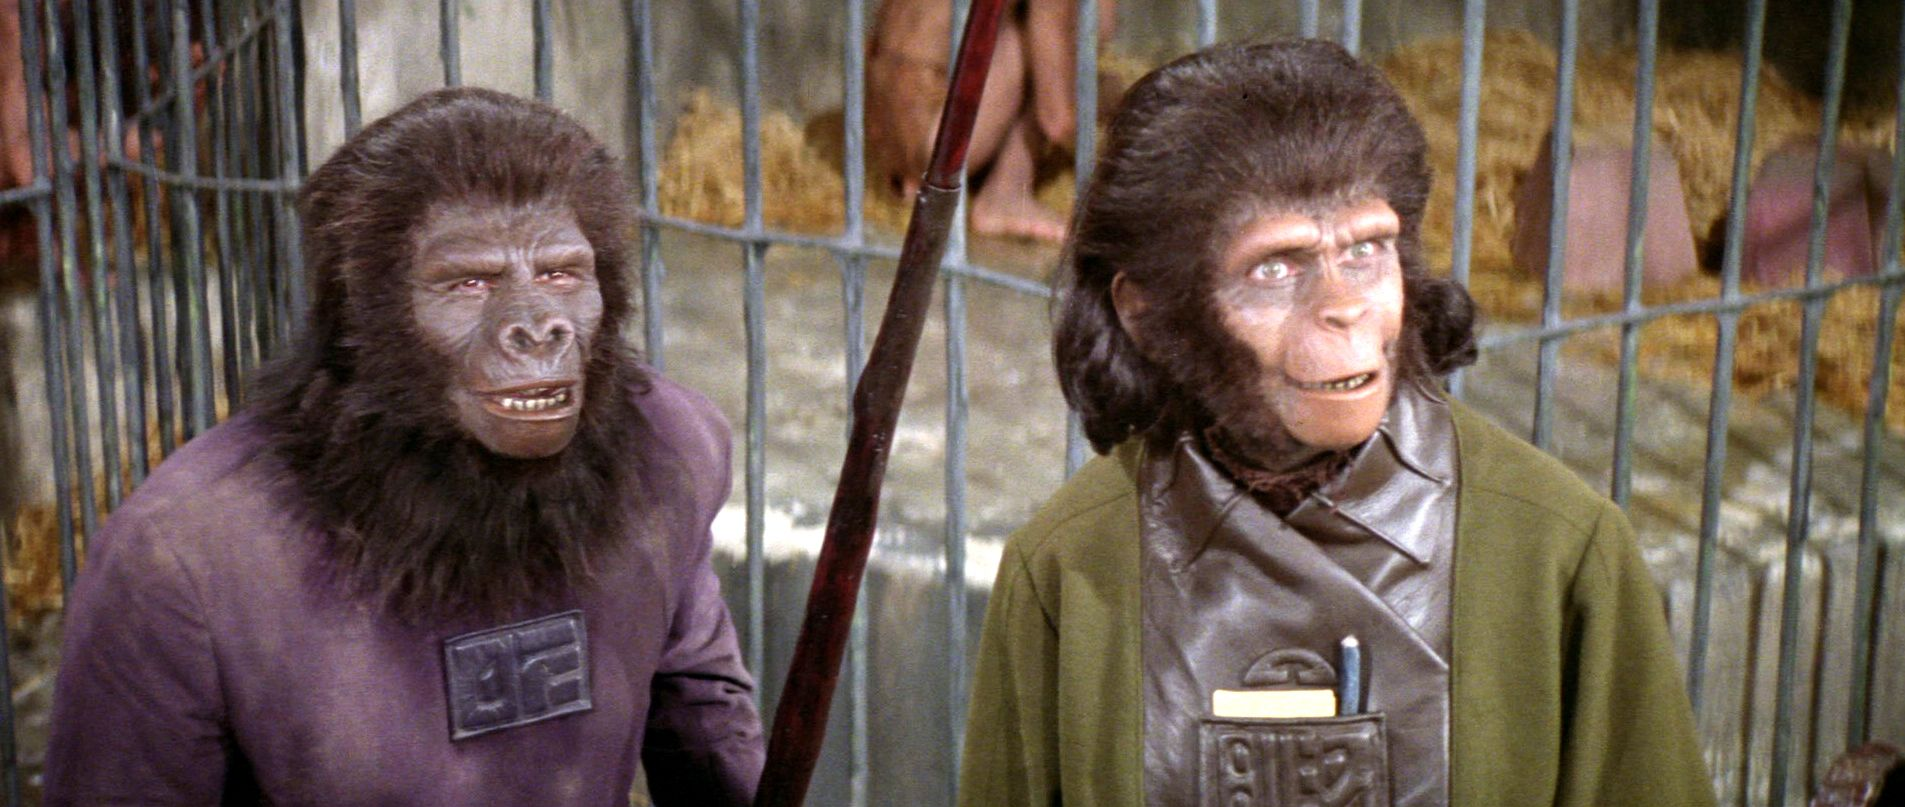 38 Best Planet Of The Apes 1968 Pics Images Planet Of The Apes